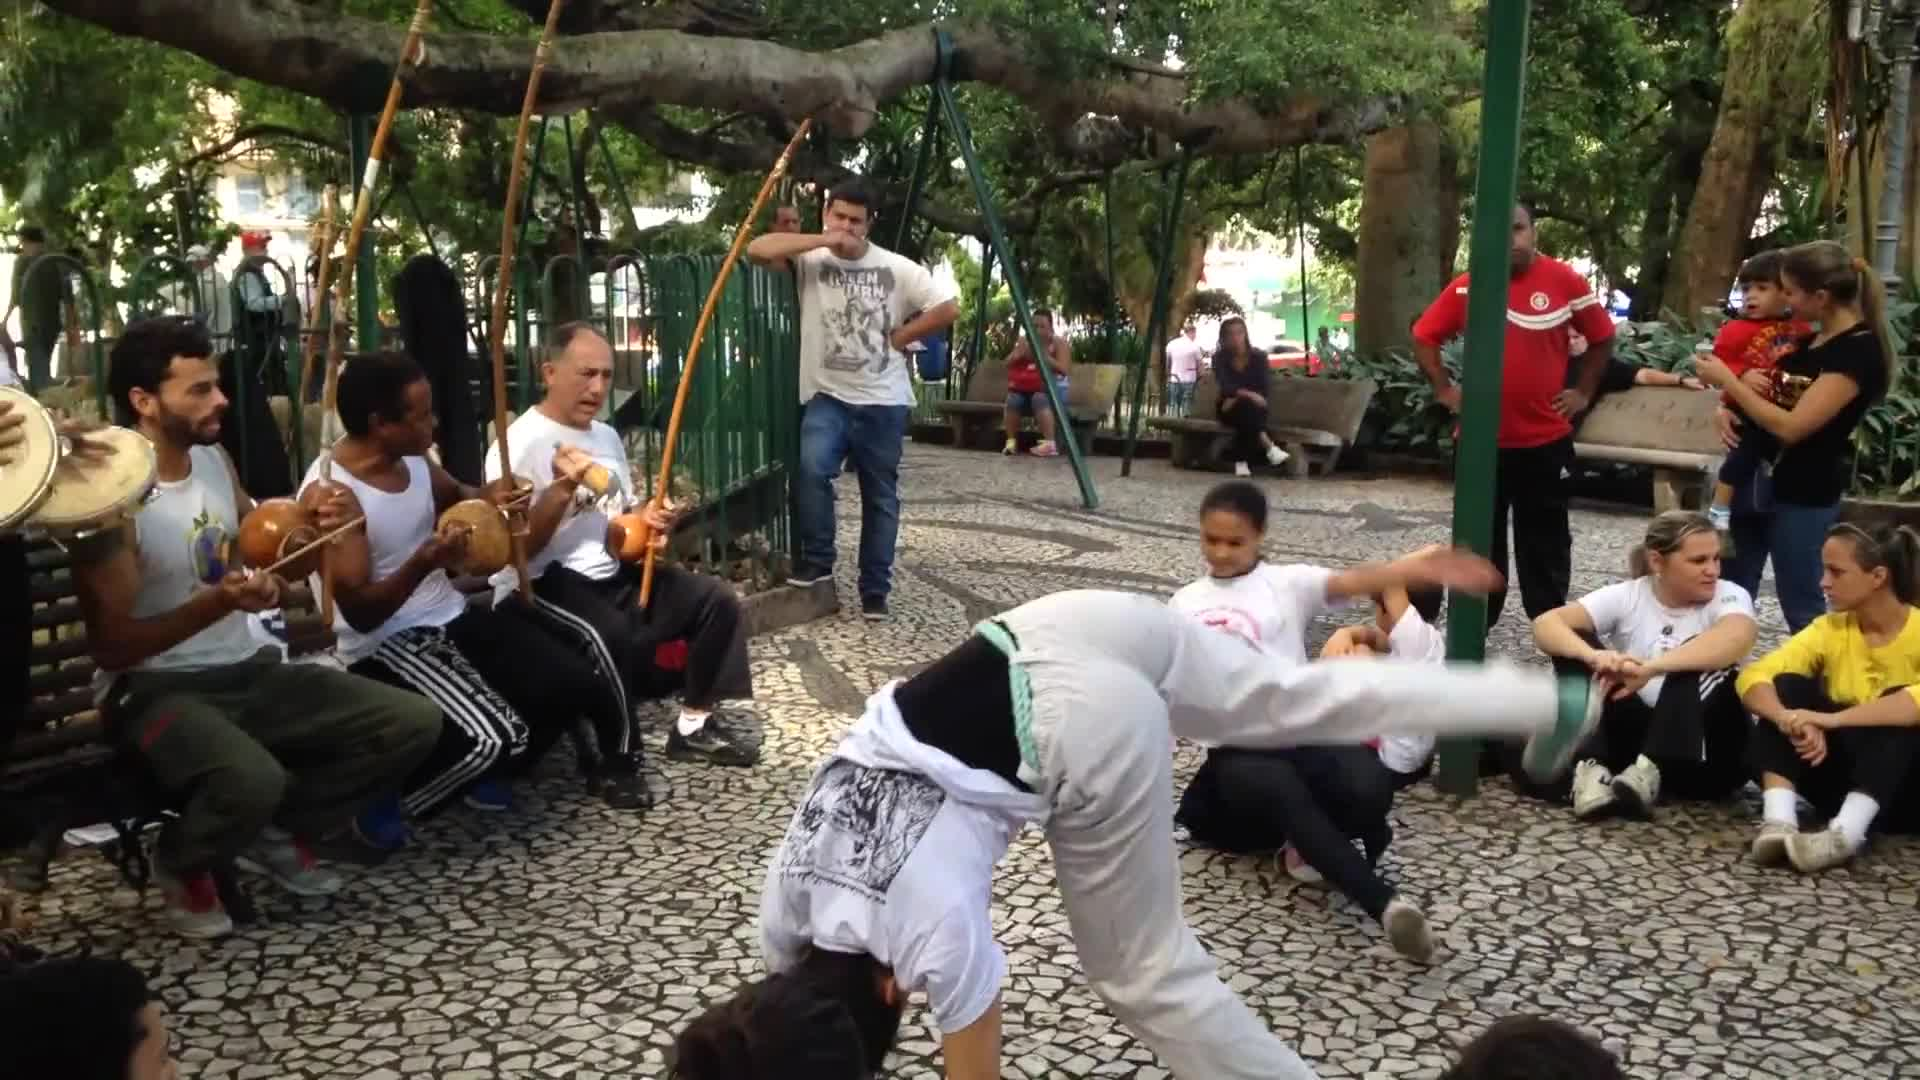 Capoeira dance brazil happy people performance